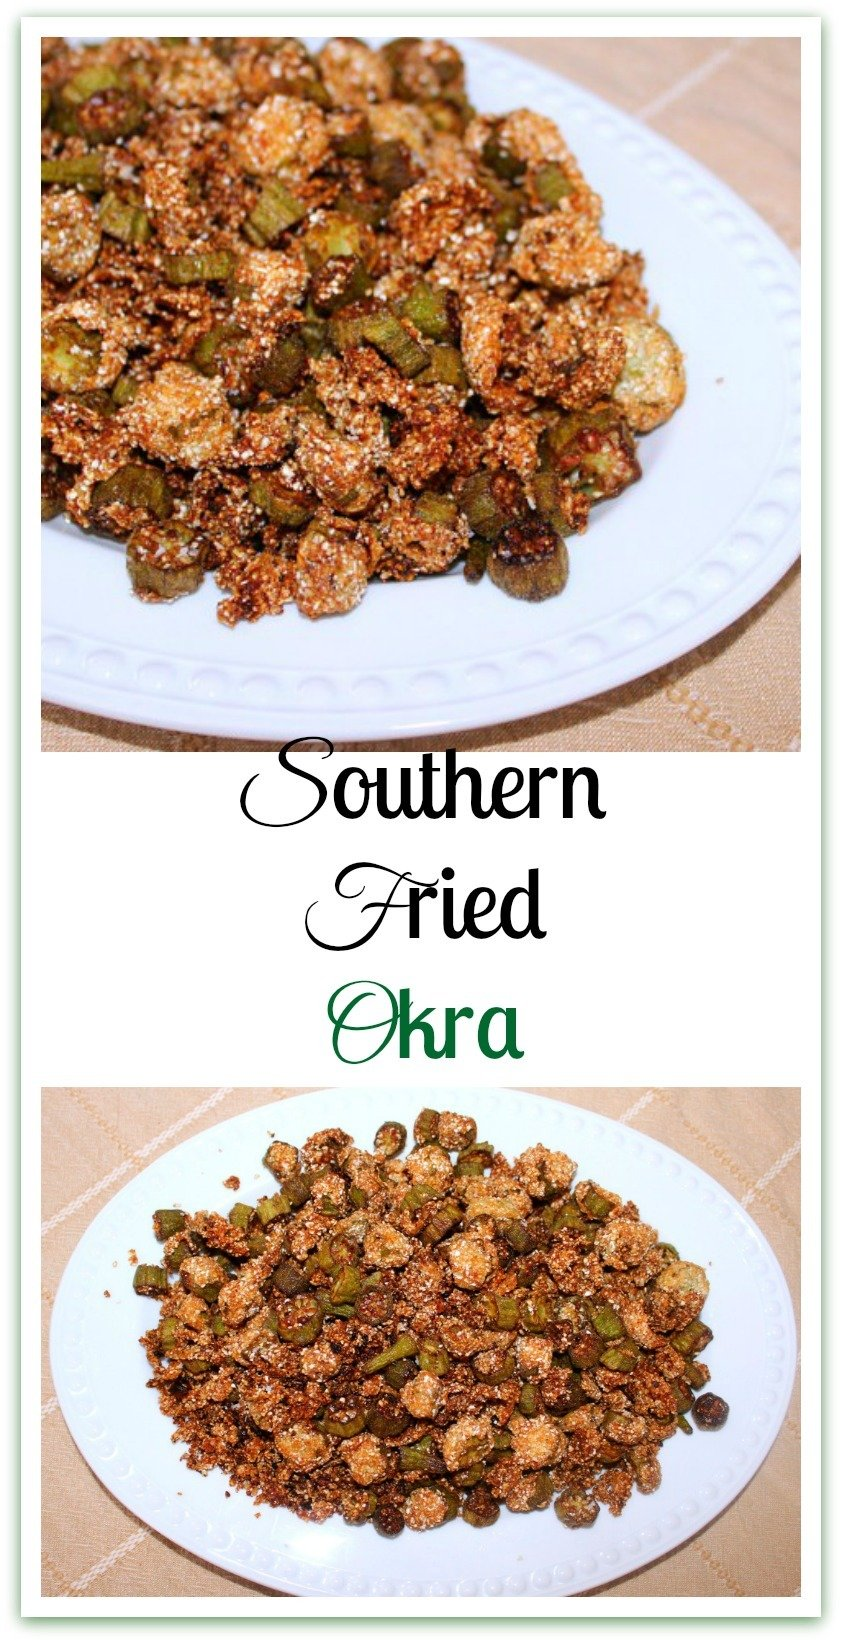 Recalling my grandmother's instructions on how to make good Southern Fried Okra paints a picture, in words and images, that I hope I never forget.  There's no need for me to do anything more than straight out explain how she taught me. #SouthernFried #SouthernOkra